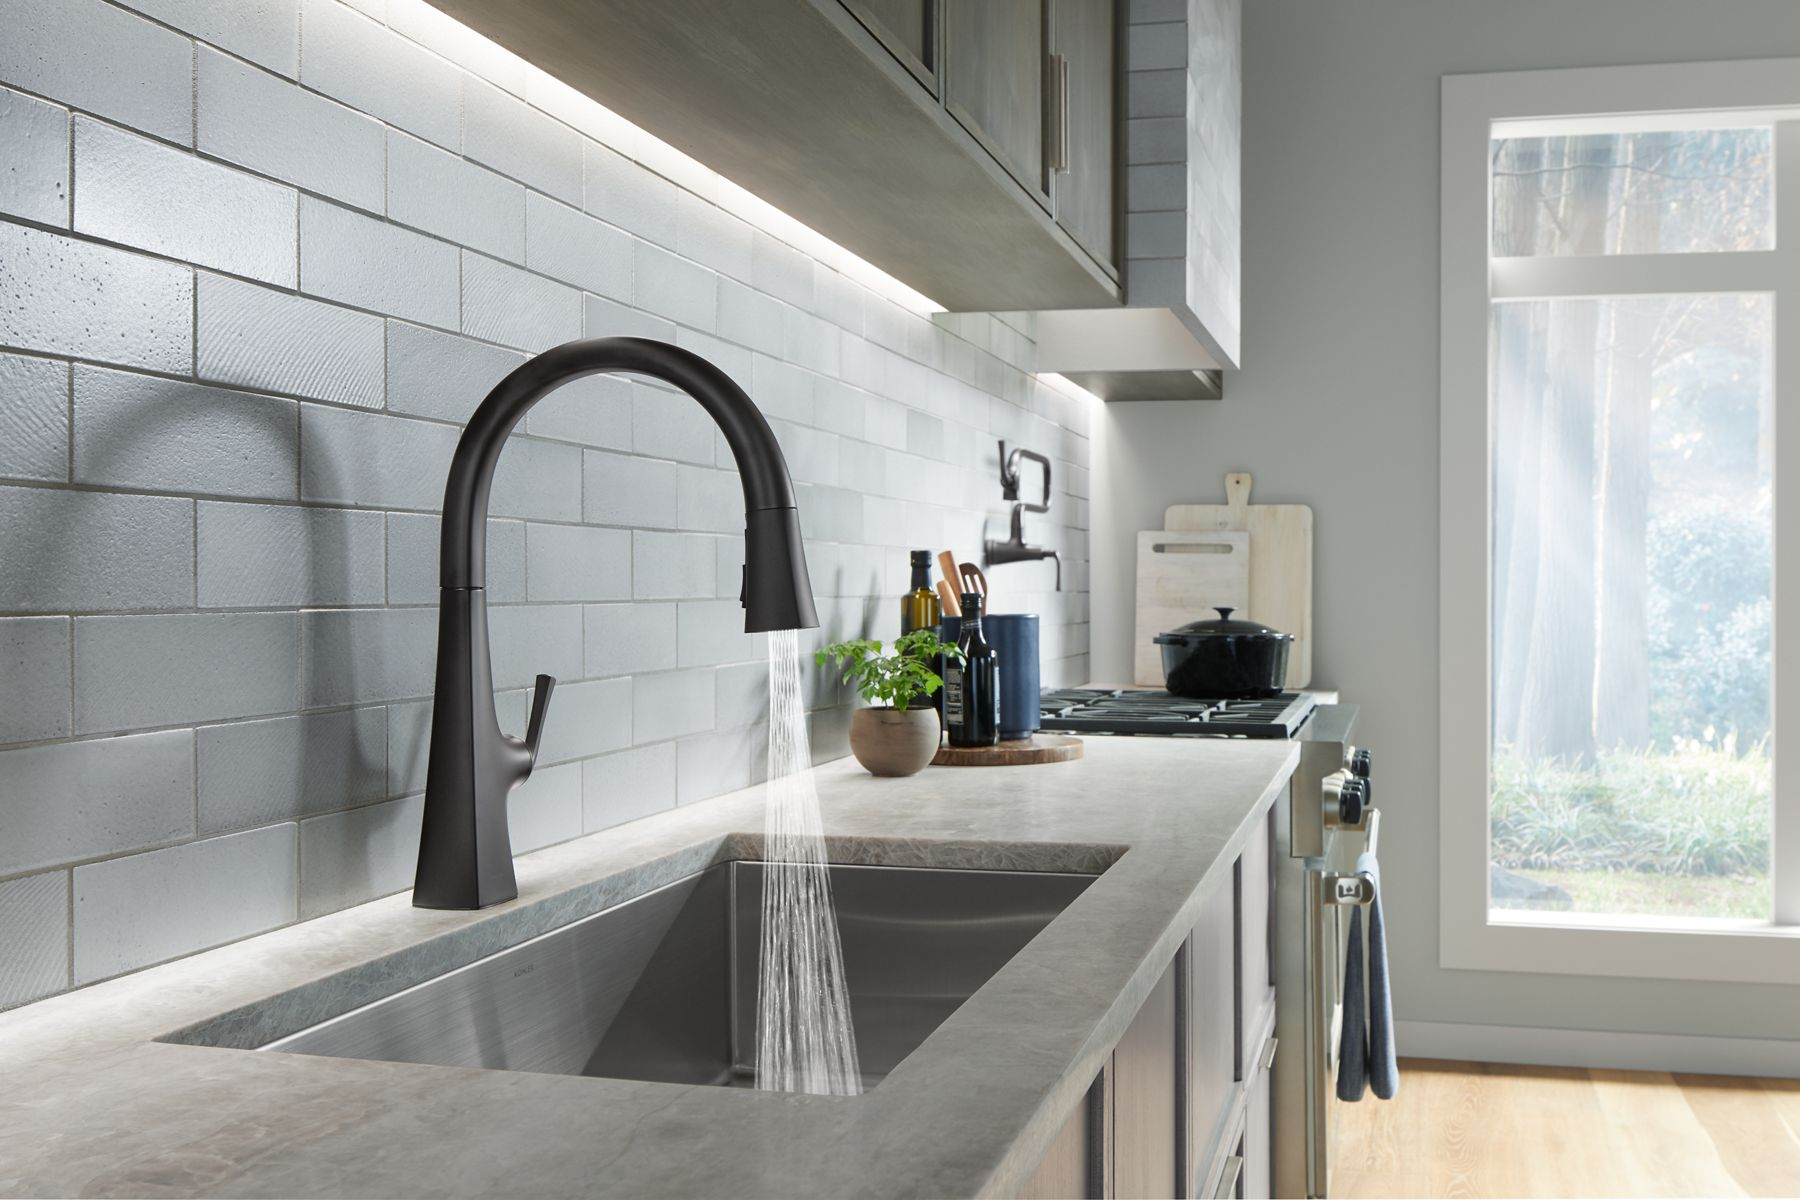 touchless kitchen faucets with response